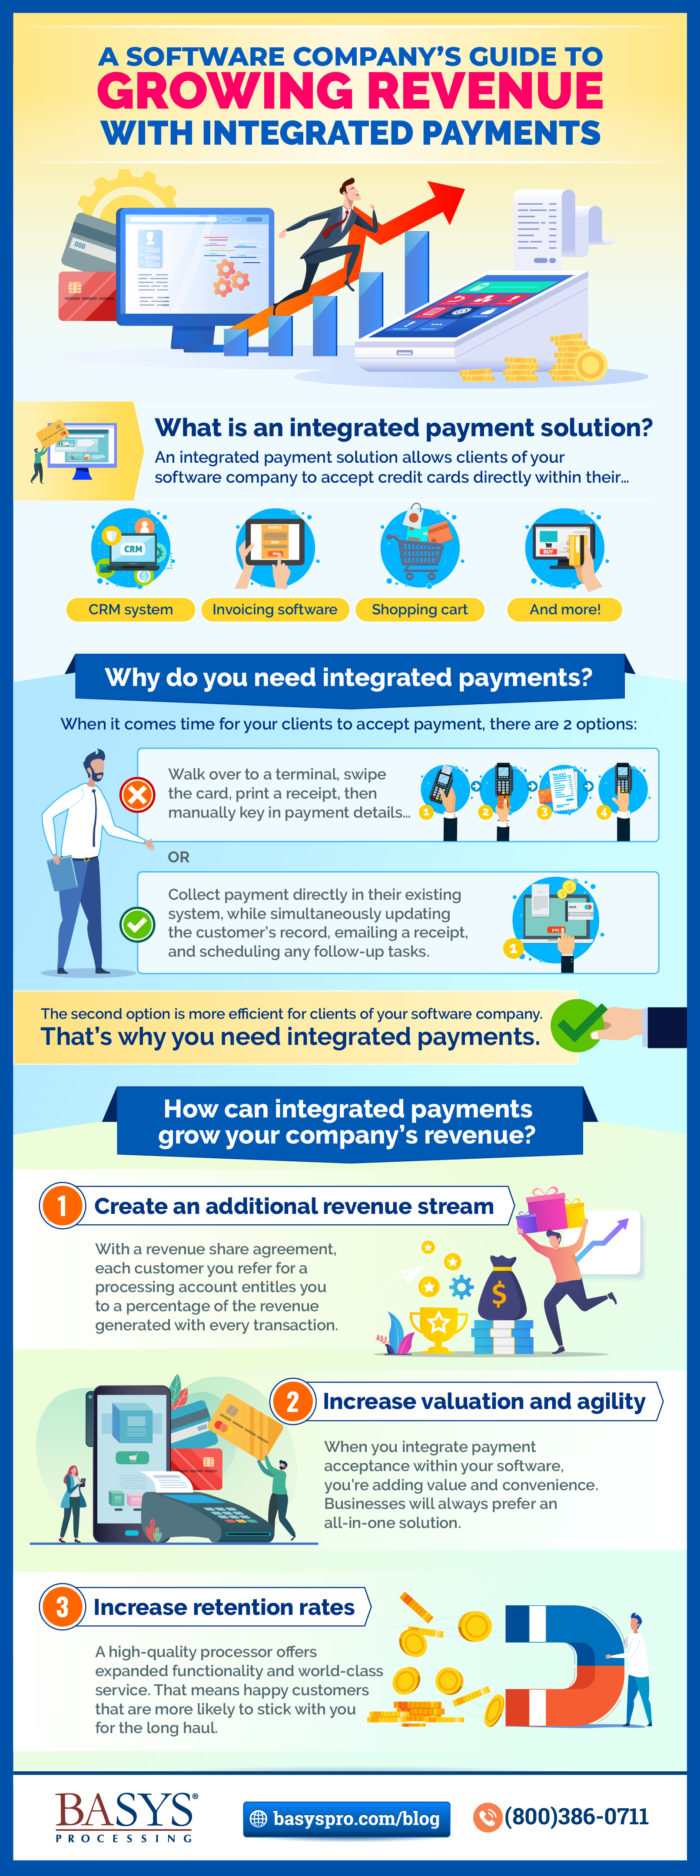 A Software Company's Guide to Growing Revenue with Integrated Payments_Med-Res